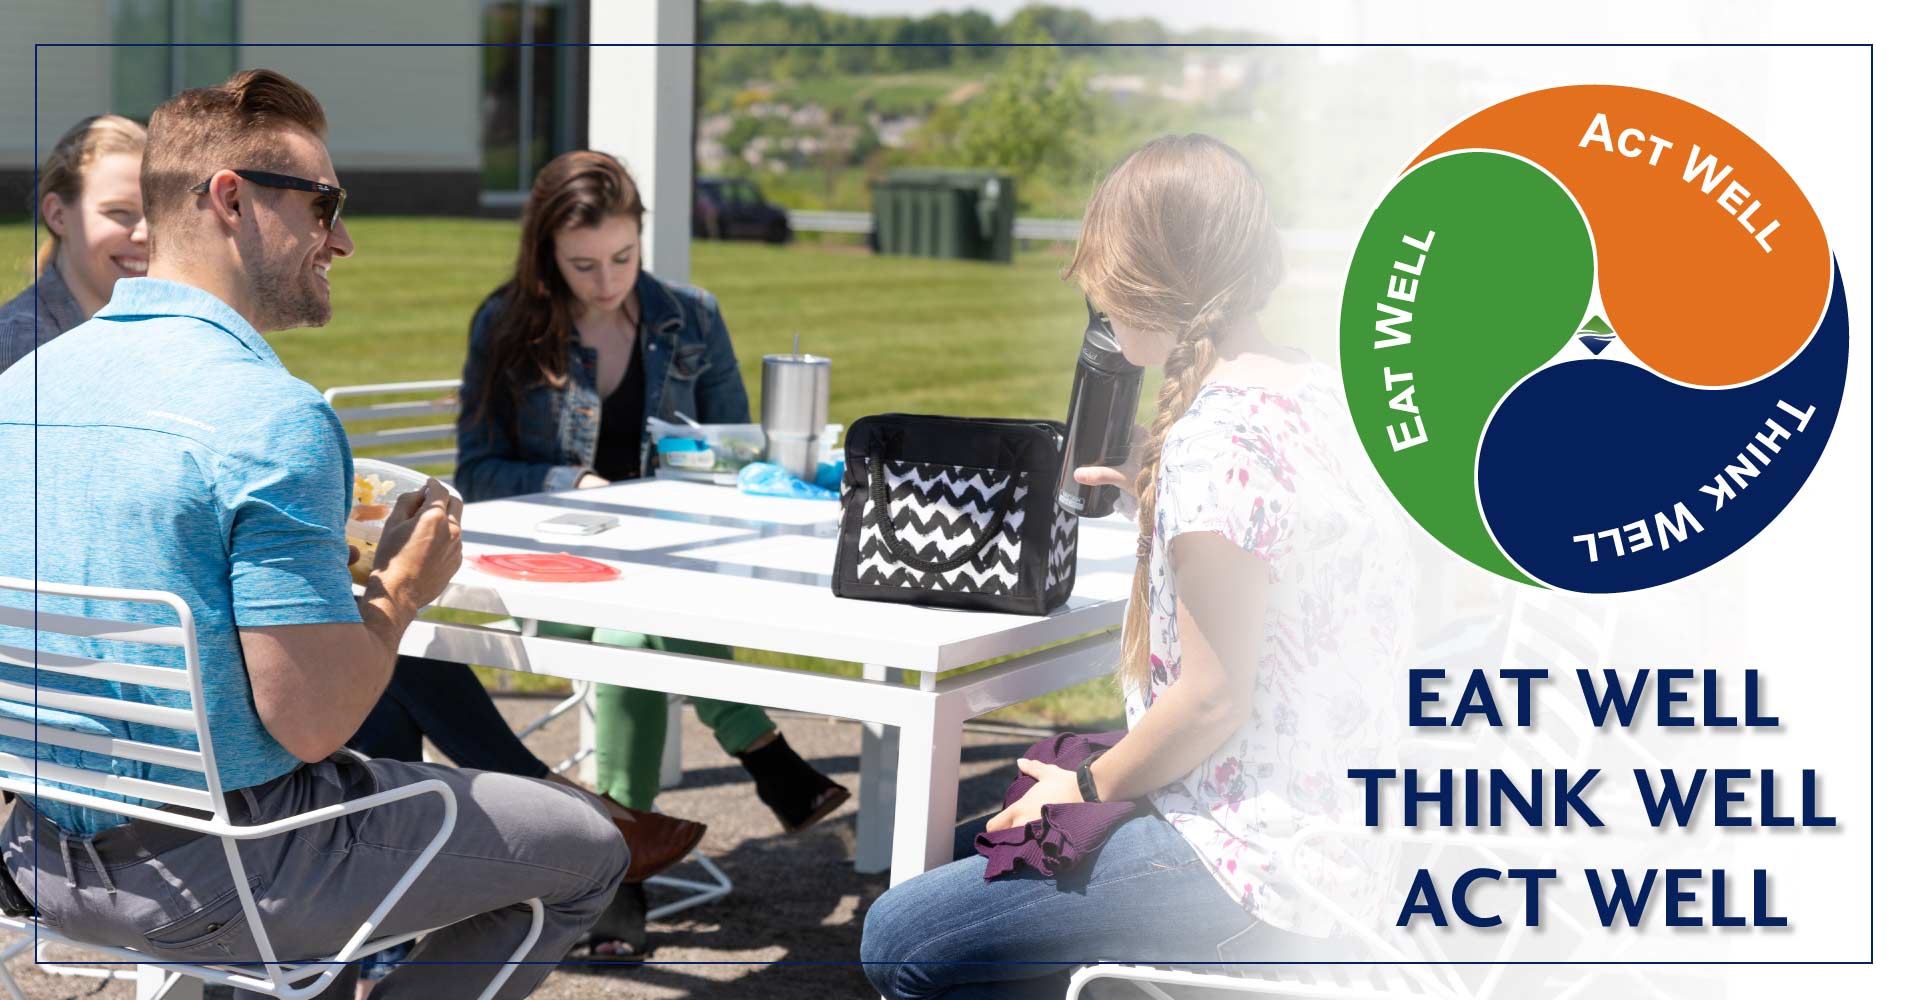 The Outdoor Garden Area at Gateway Engineers is the perfect spot for a healthy lunch or an outdoor meeting.